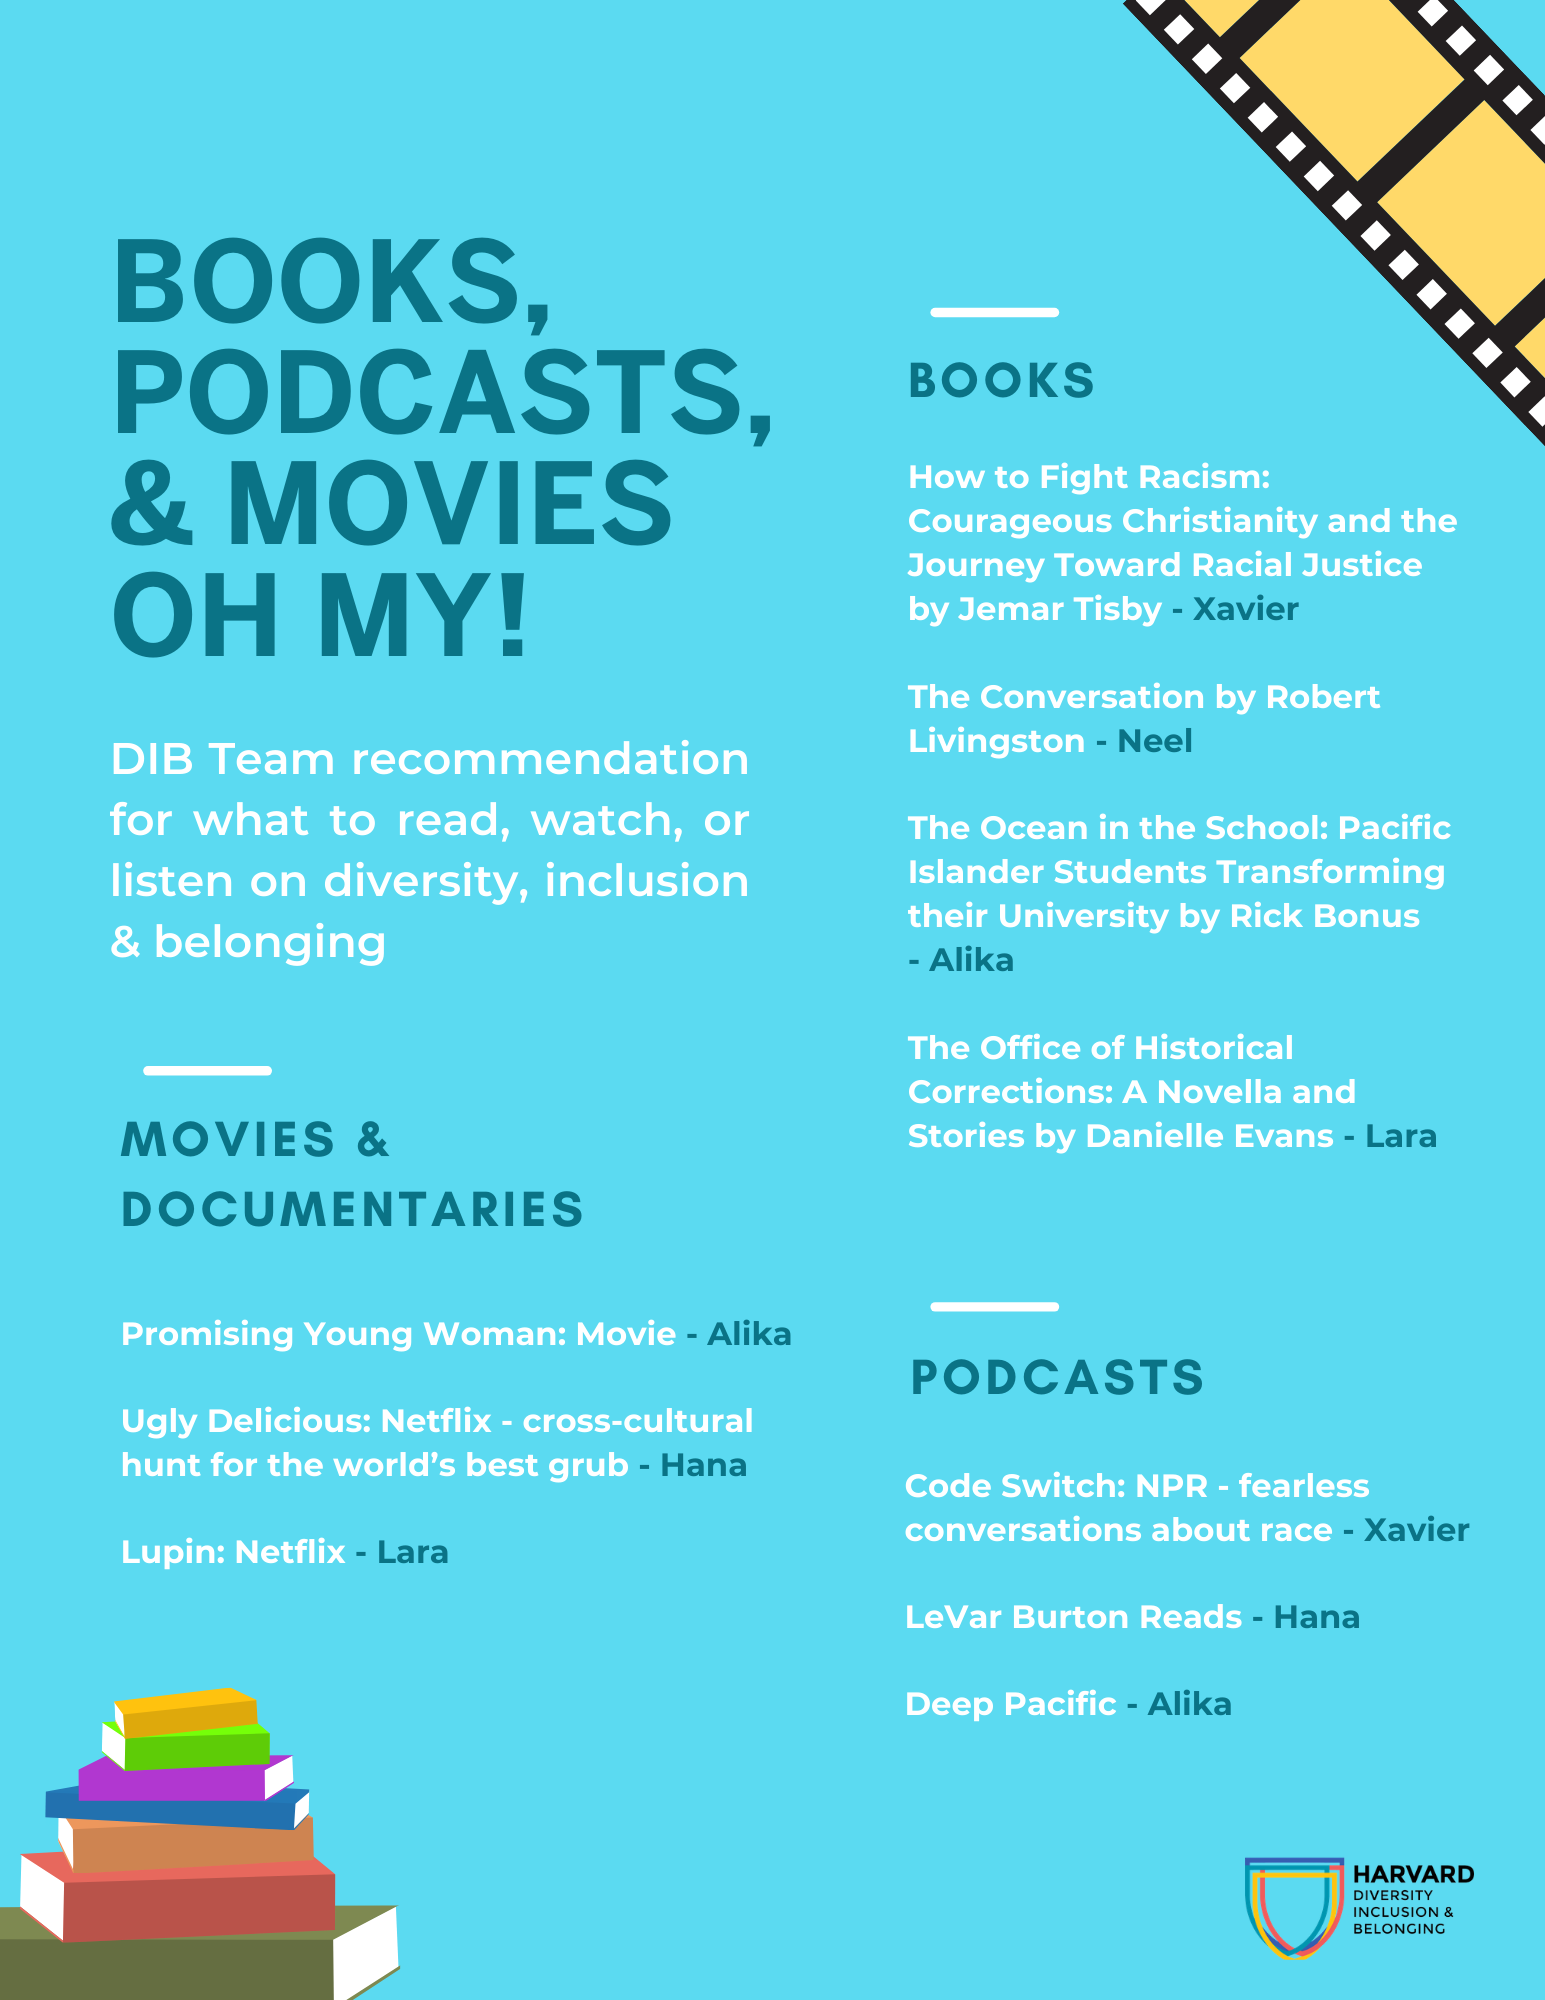 Books, movies and podcasts recommended by select ODIB staff. Accessible version of flyer linked below.